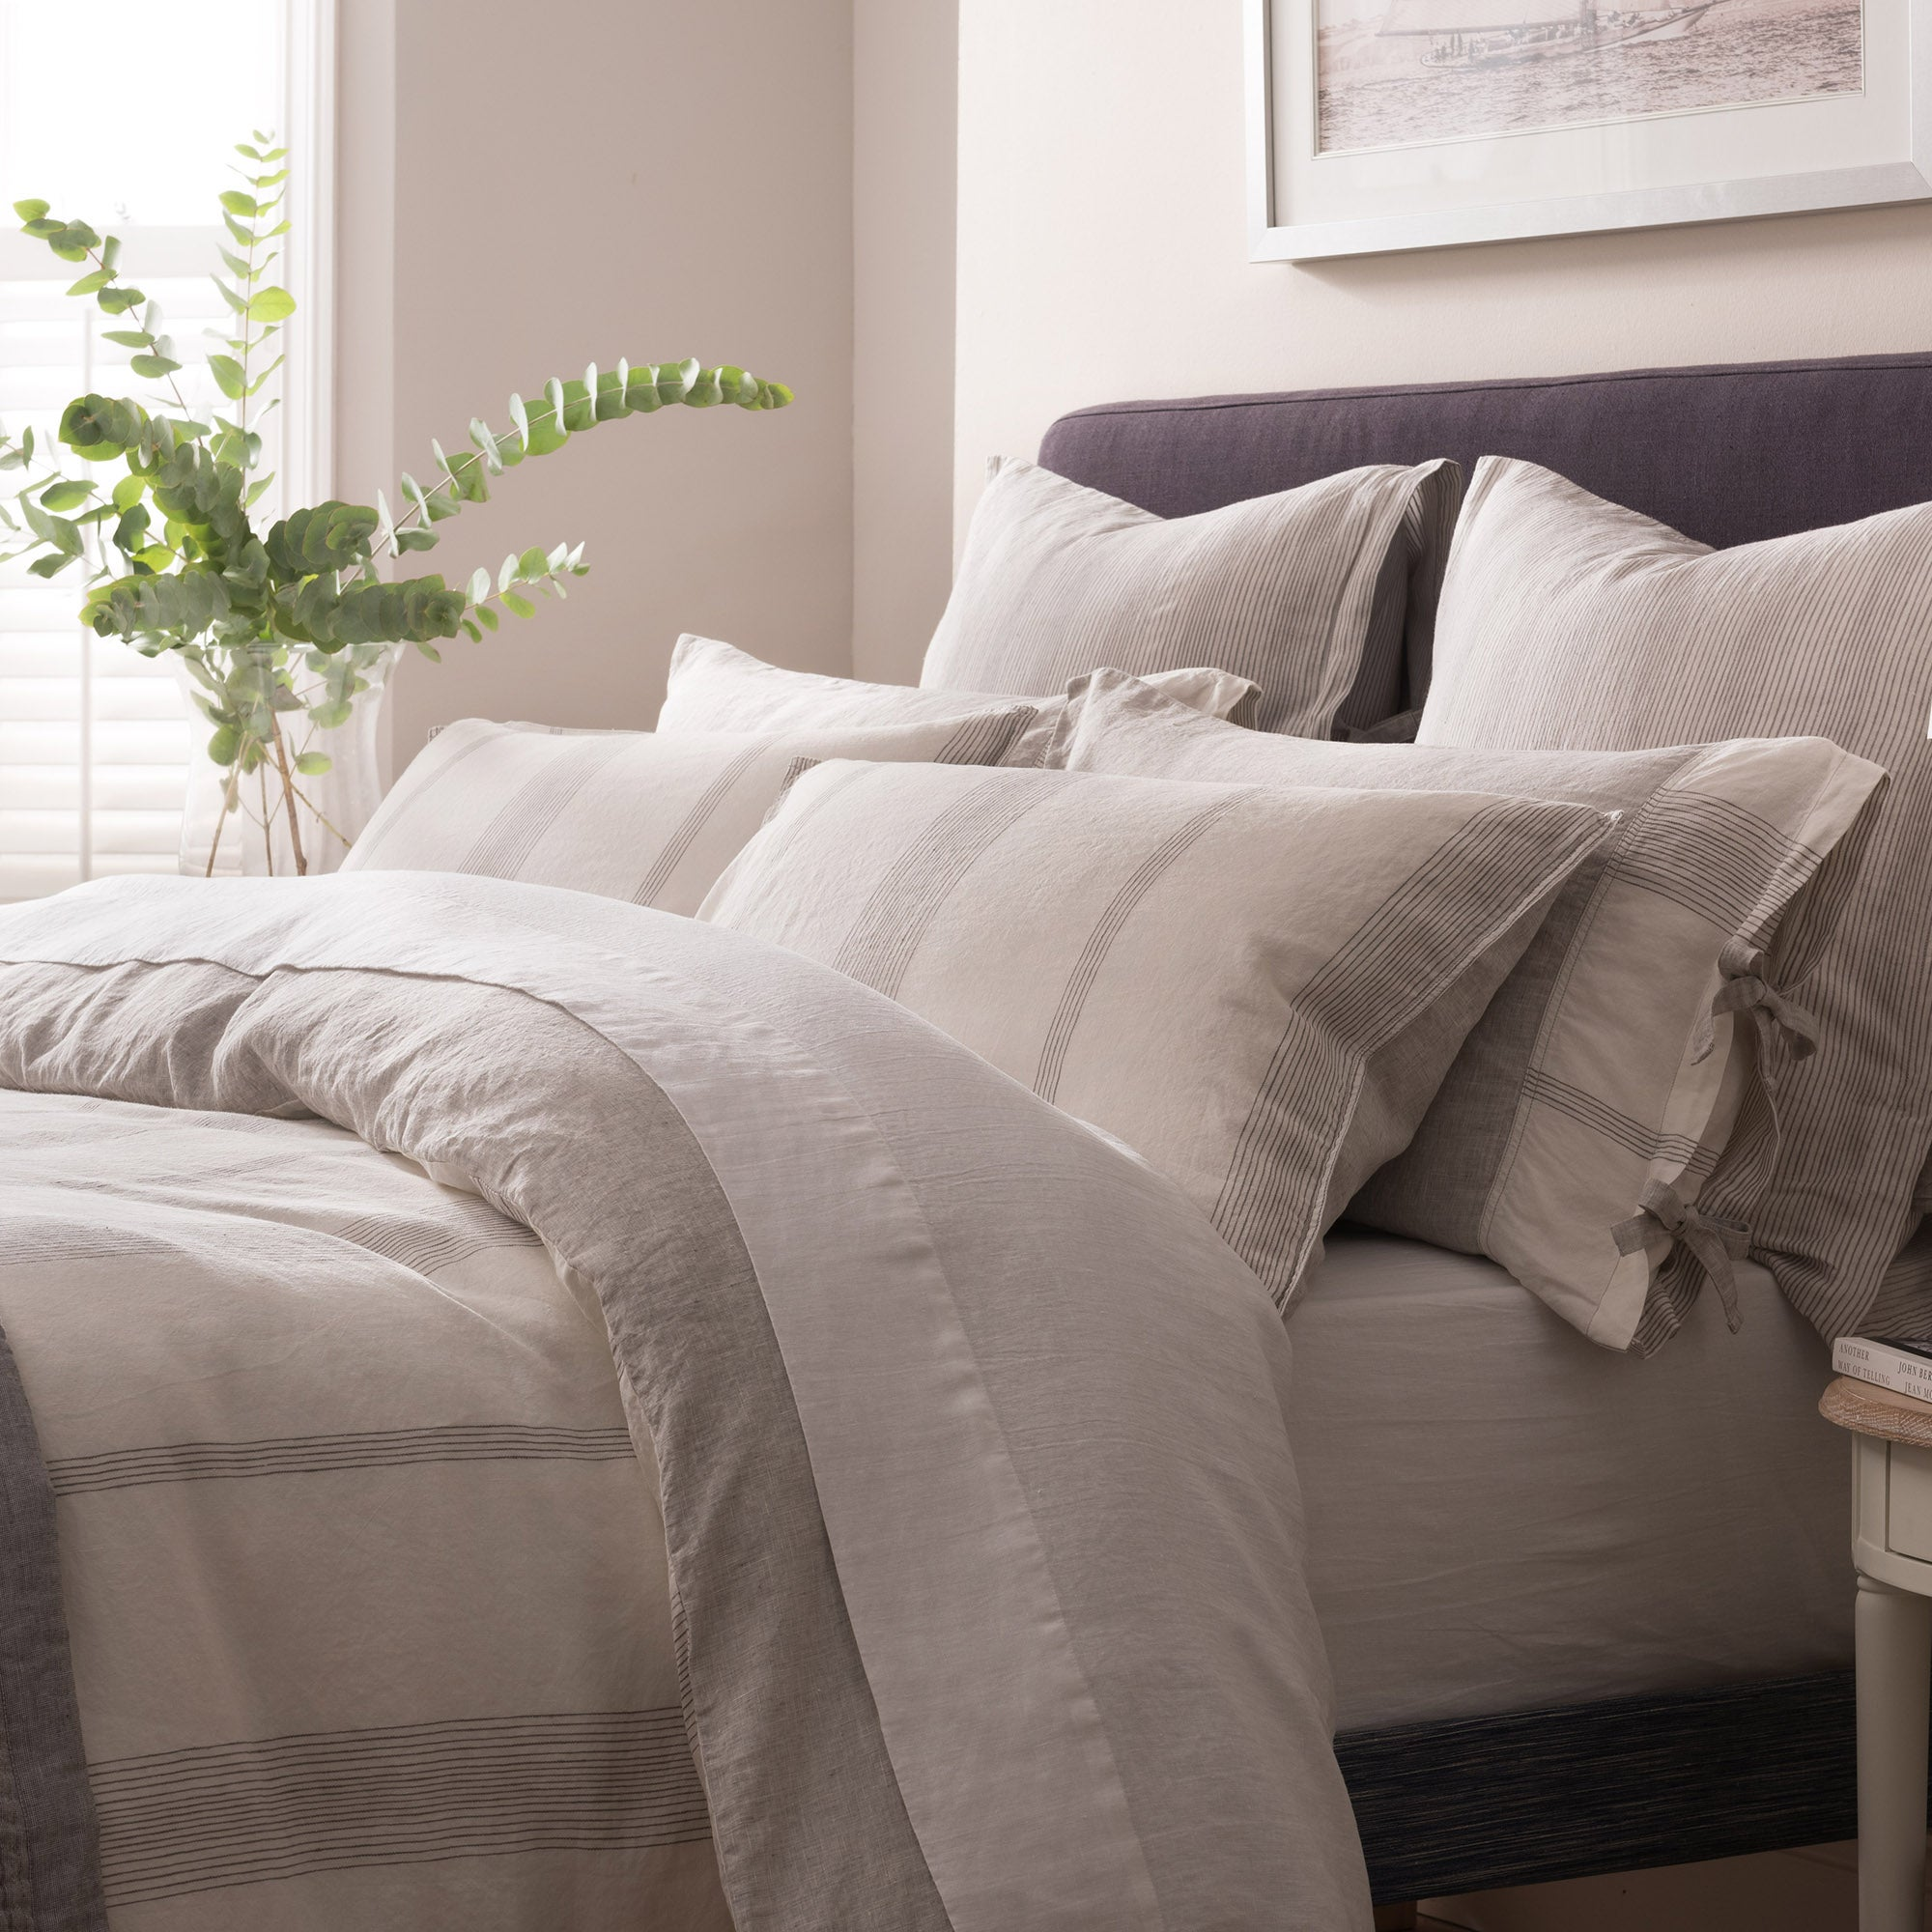 Dorma Marinna Natural Bed Linen Collection